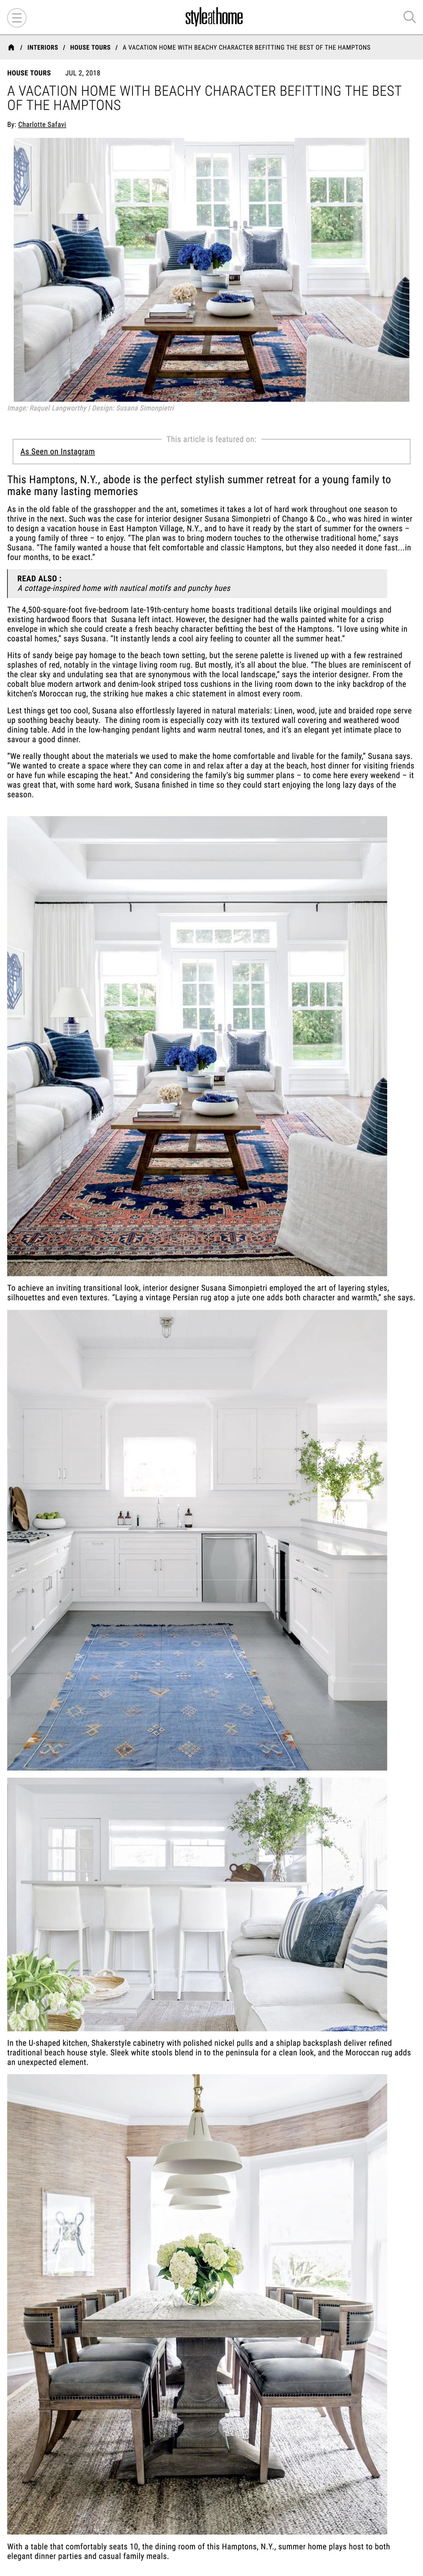 1.-styleathome-interiors-house-tours-article-a-vacation-home-with-beachy-character-befitting-the-best-of-the-hamptons1.jpg